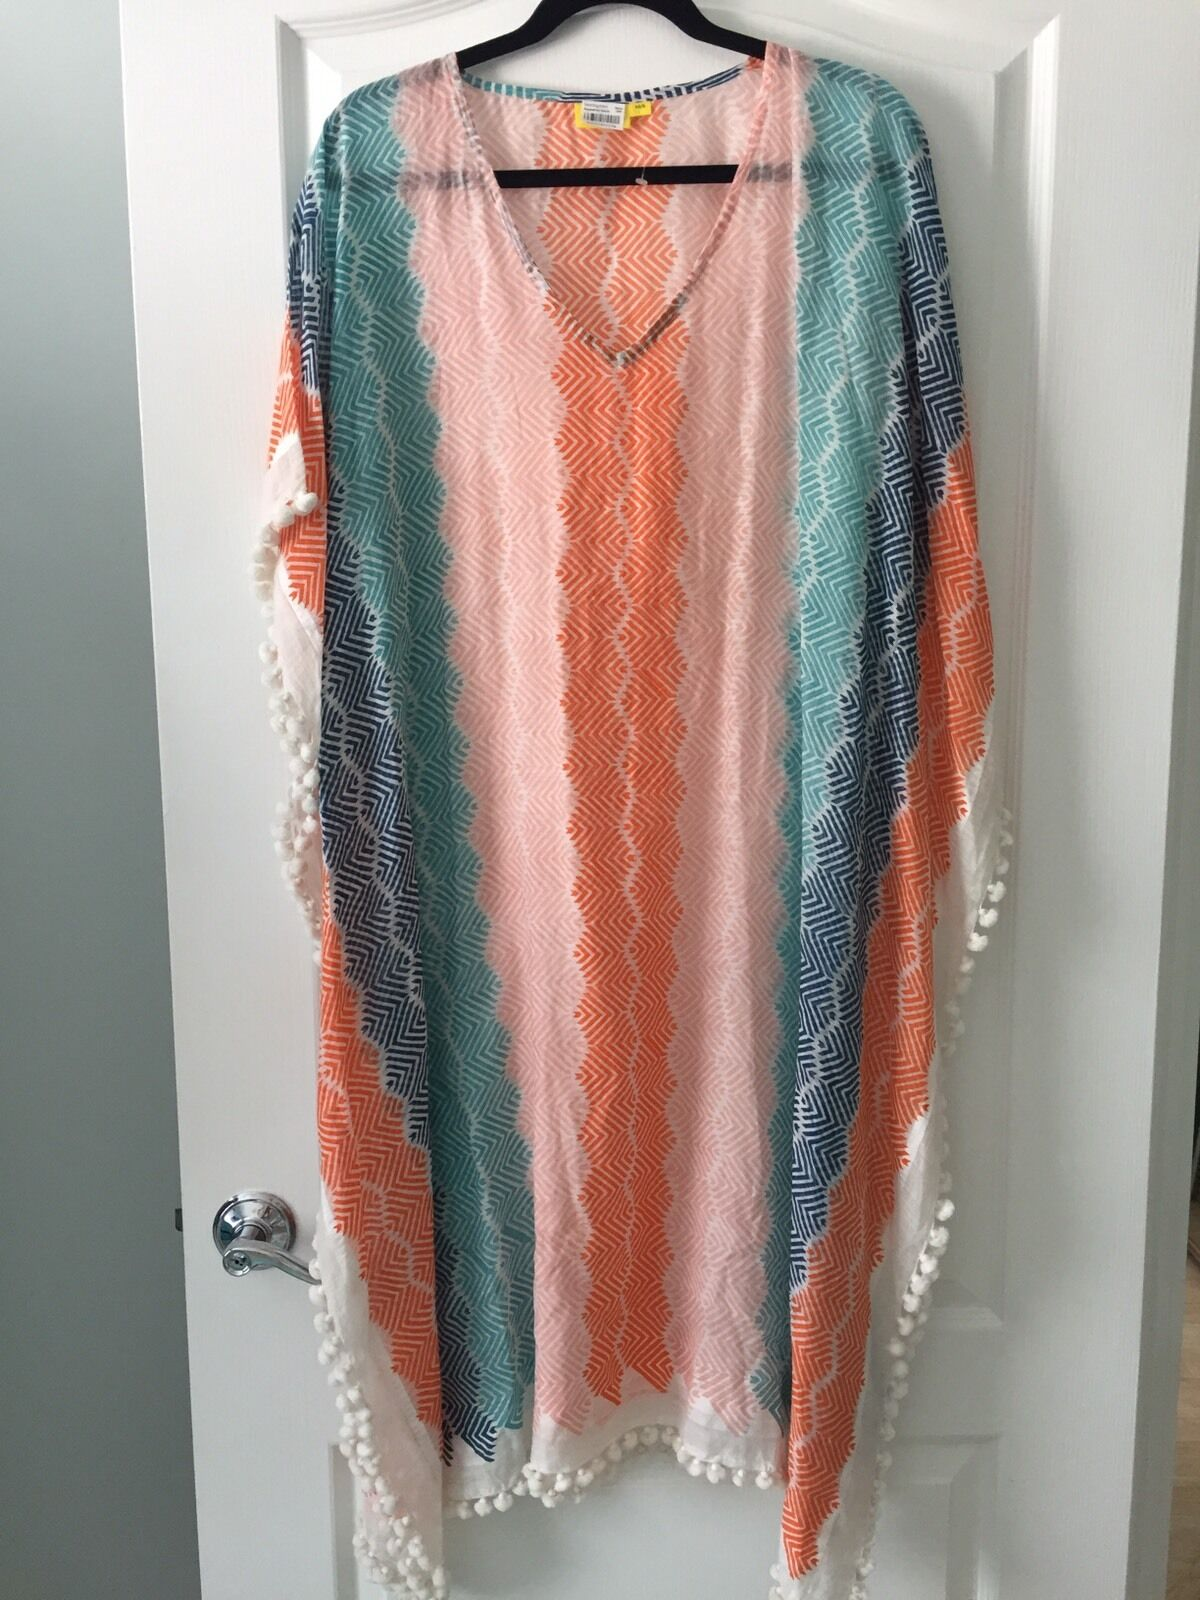 NWT  Roberta Roller Rabbit chasca Pompom Trimmed Caftan XS S X-SMALL SMALL